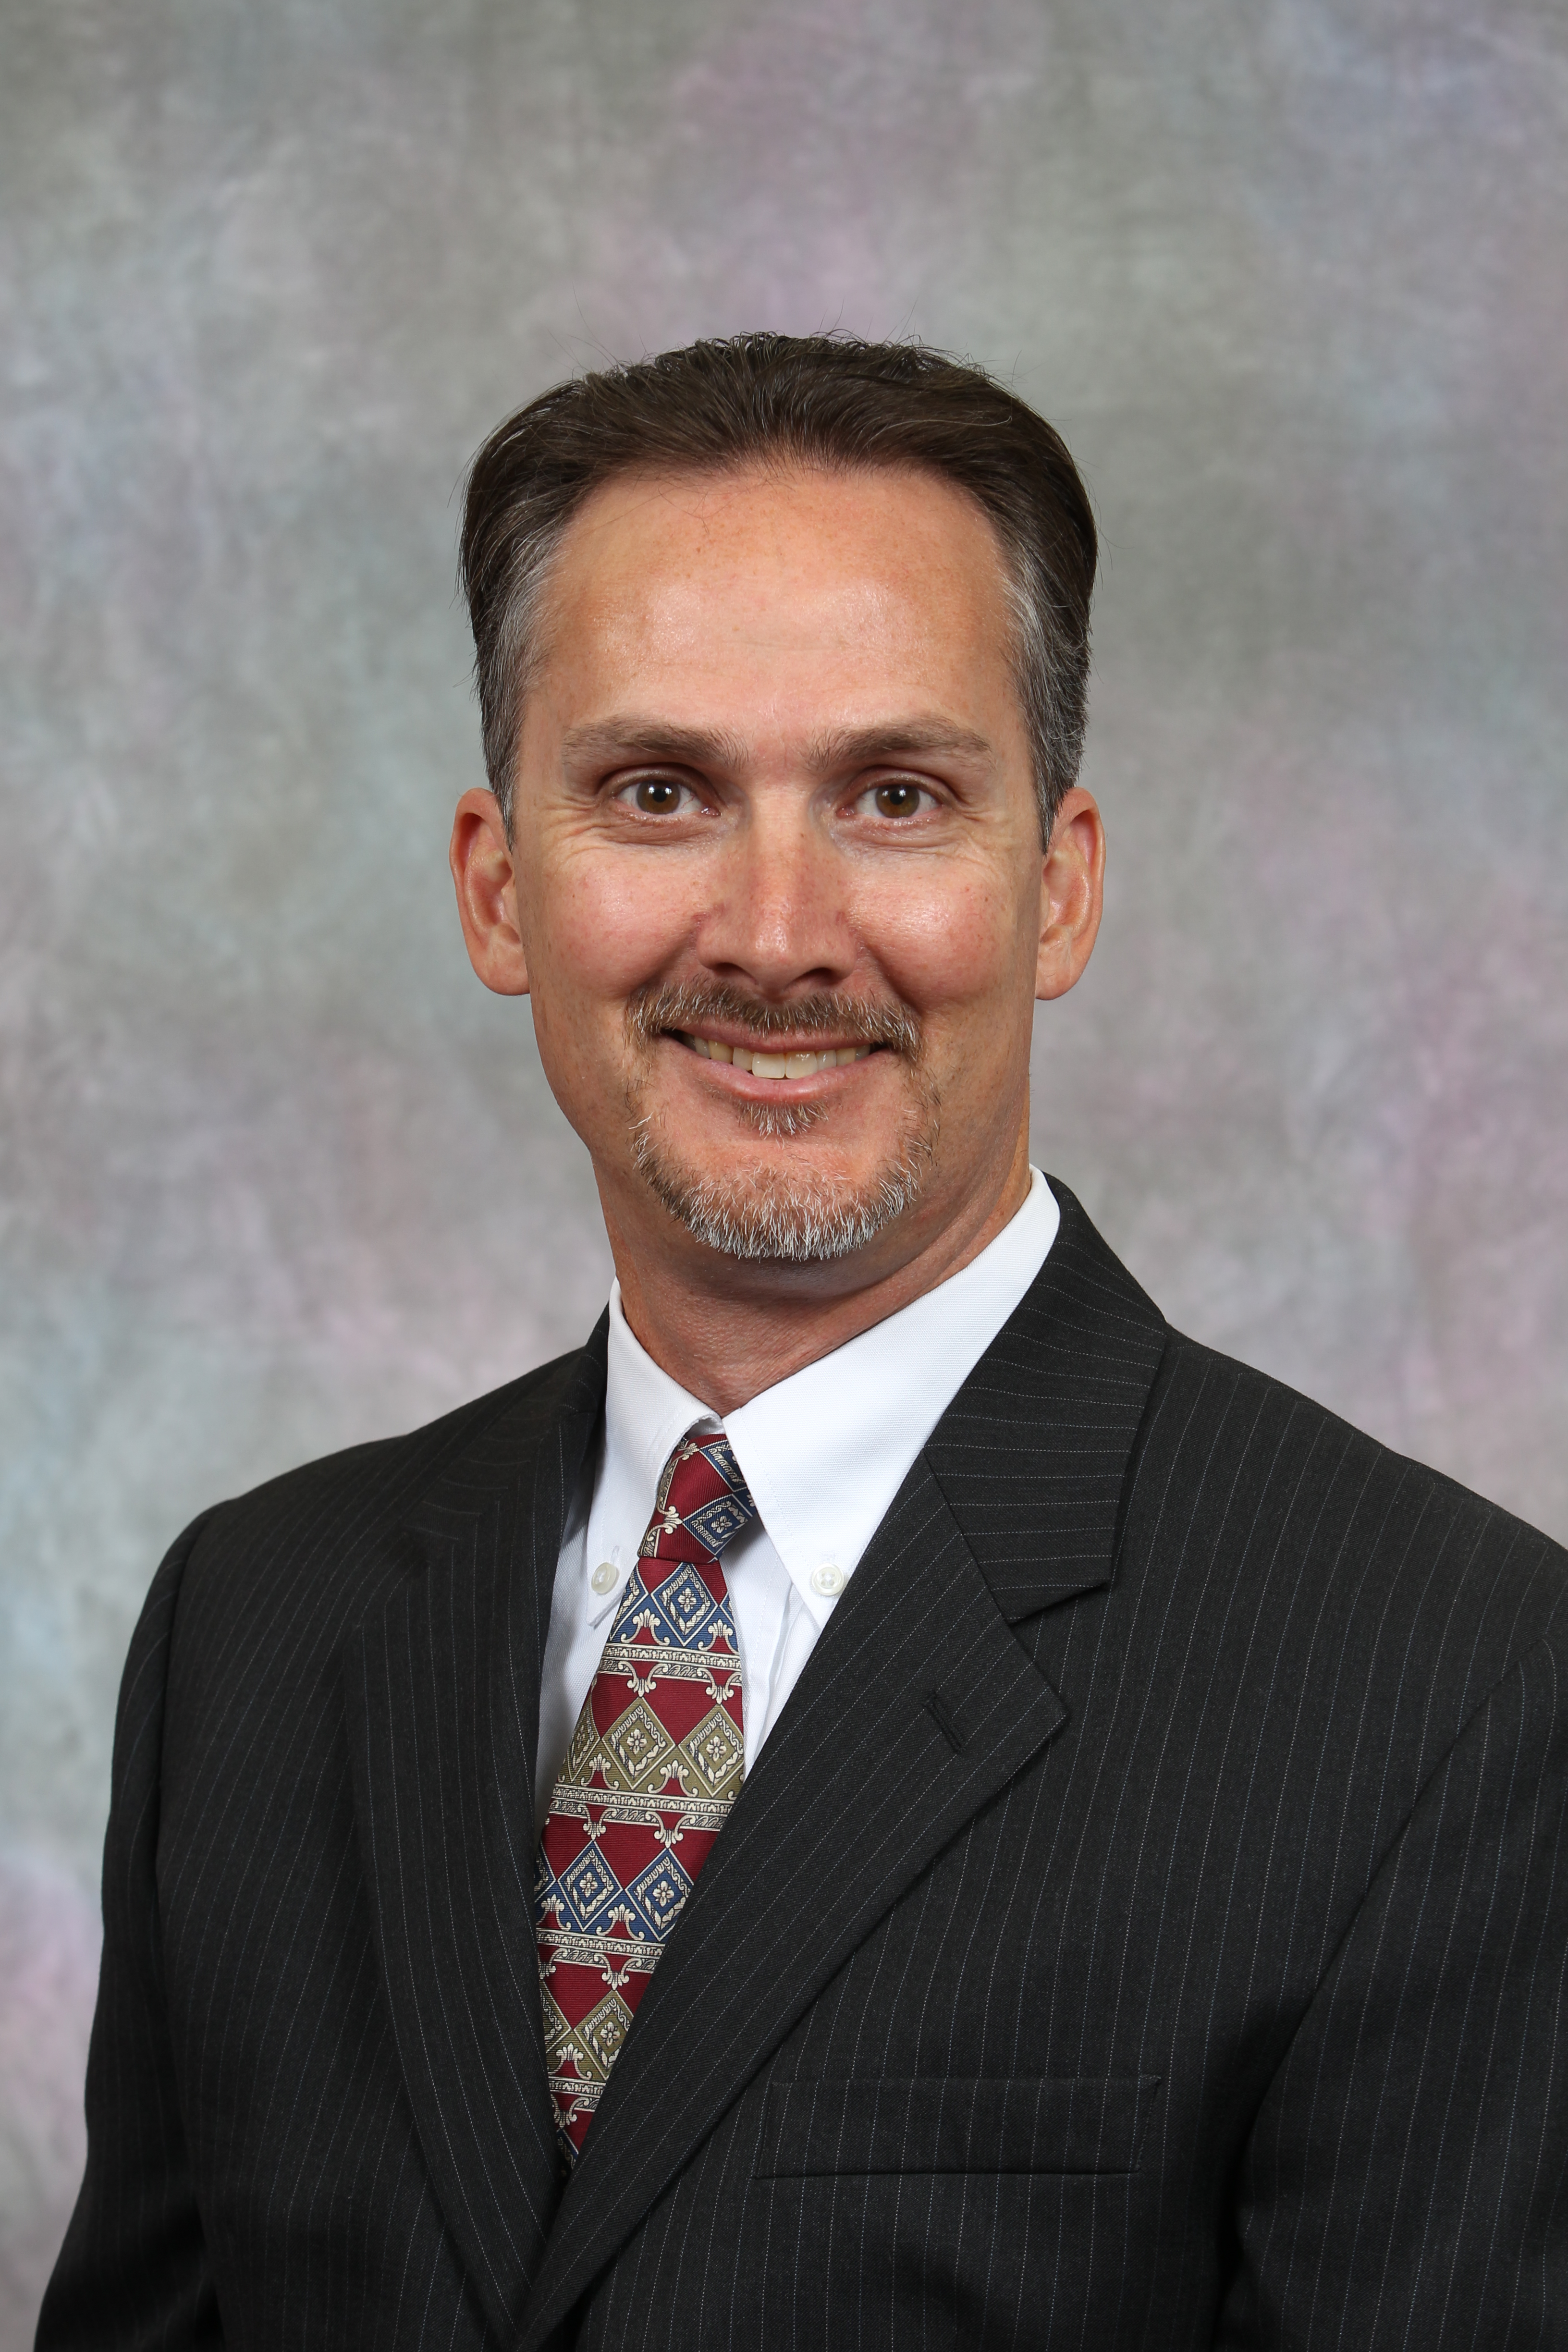 Introducing new faculty member, Dr. W. David Carr